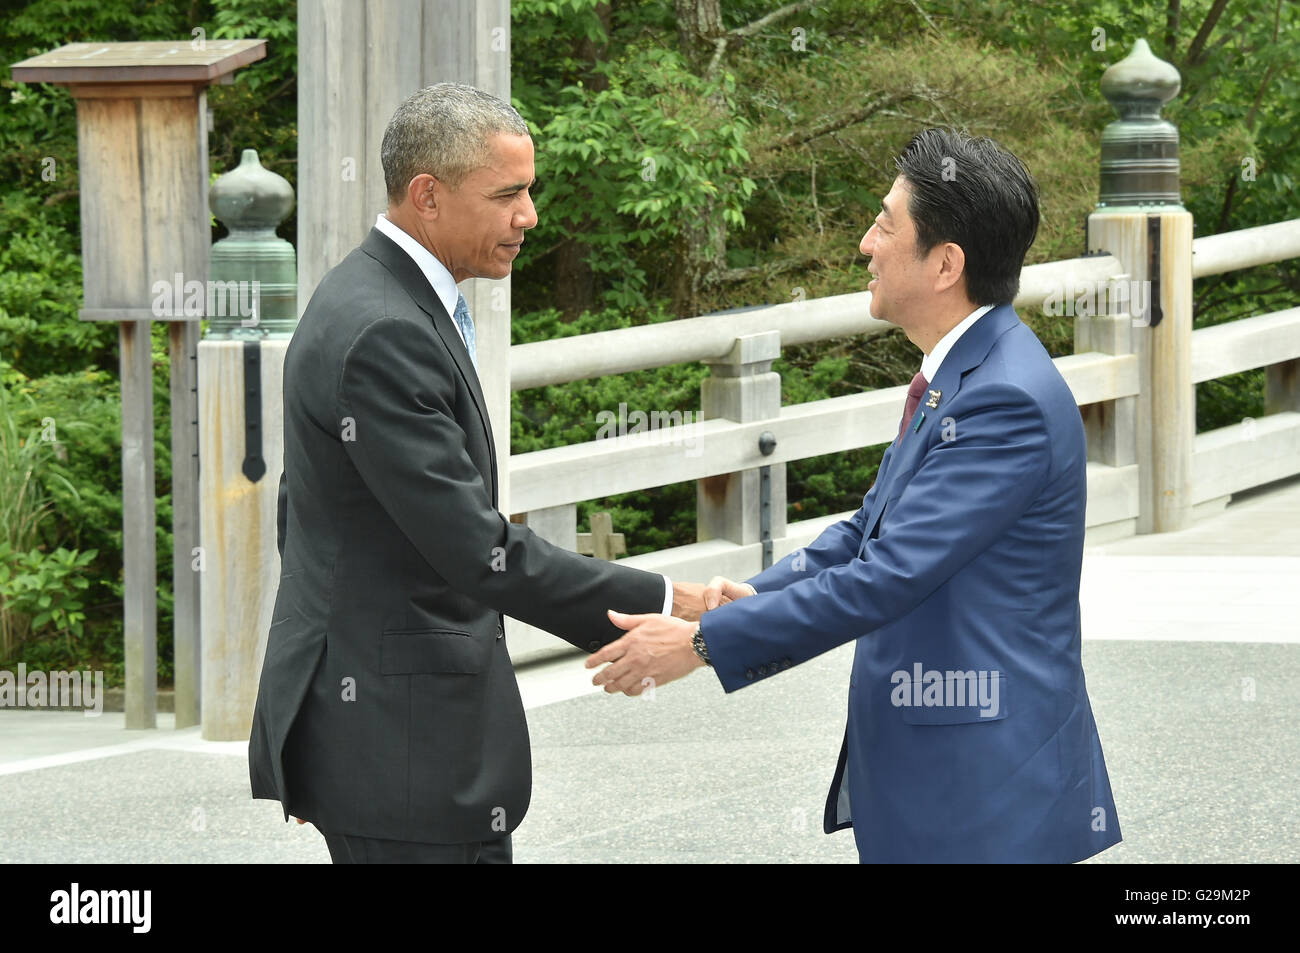 Us president barack obama is greeting by japanese prime minister us president barack obama is greeting by japanese prime minister shinzo abe at the start of the g7 summit at the ise jingu shrine may 26 2016 in ise m4hsunfo